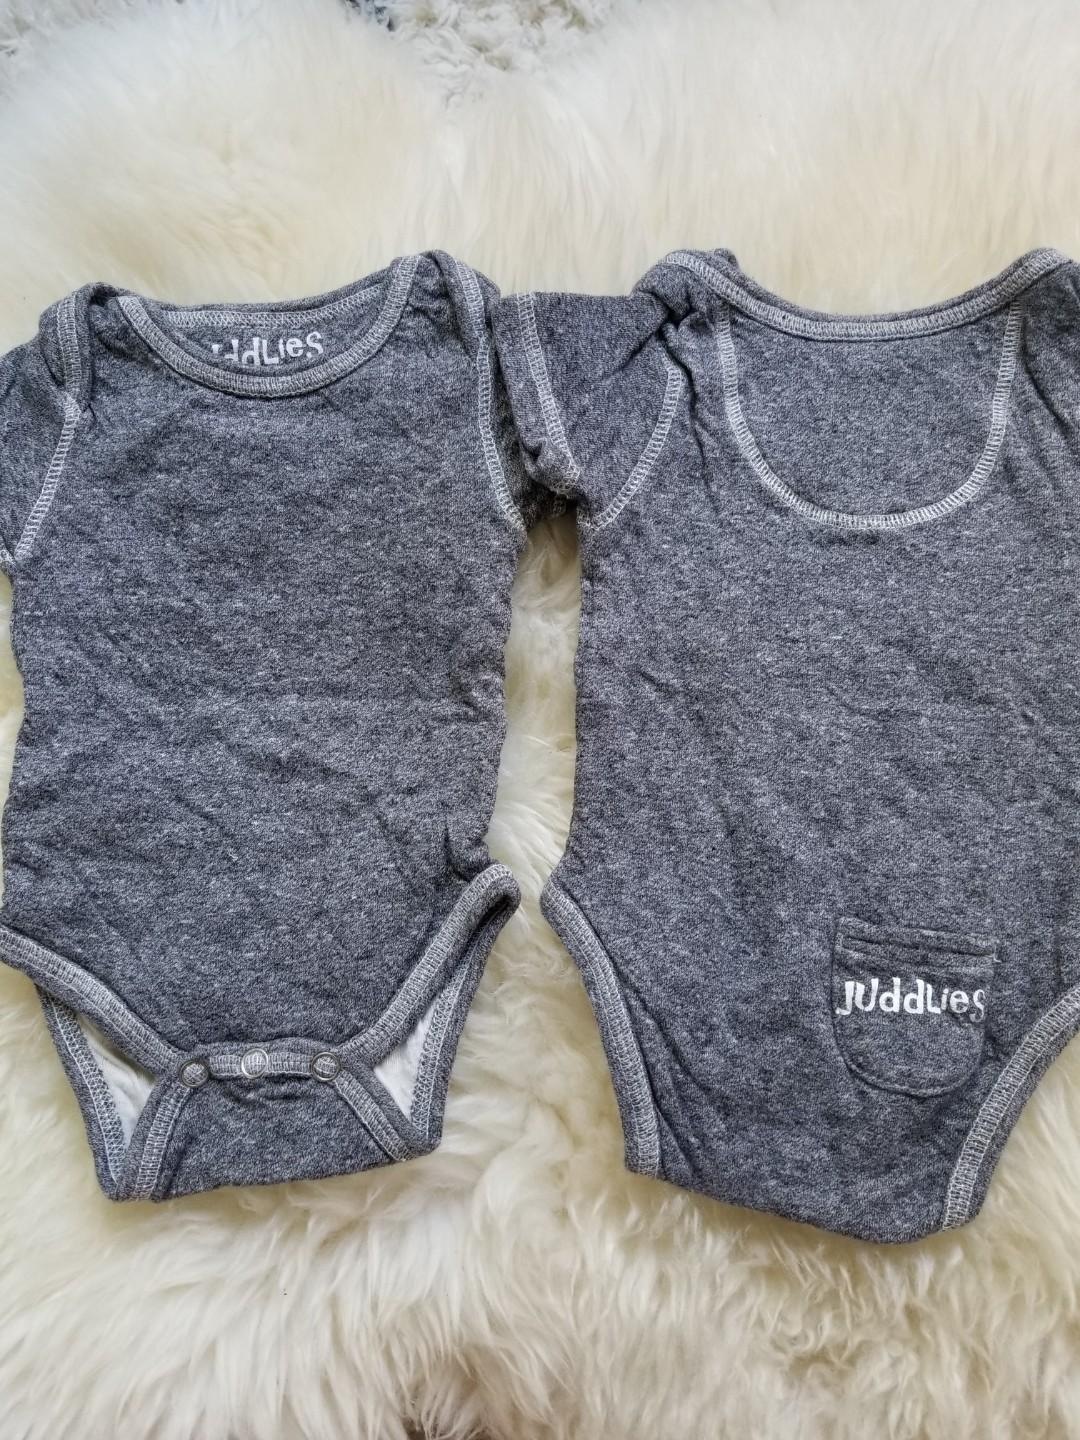 Juddlies onesie bodysuit size 0 to 3 months practically new made in Canada pick up Union Station Yorkville or Gerrard and Main. $5 each or both for $8 retails purchased brand new for 14.95. Yes it is available if you see this ad